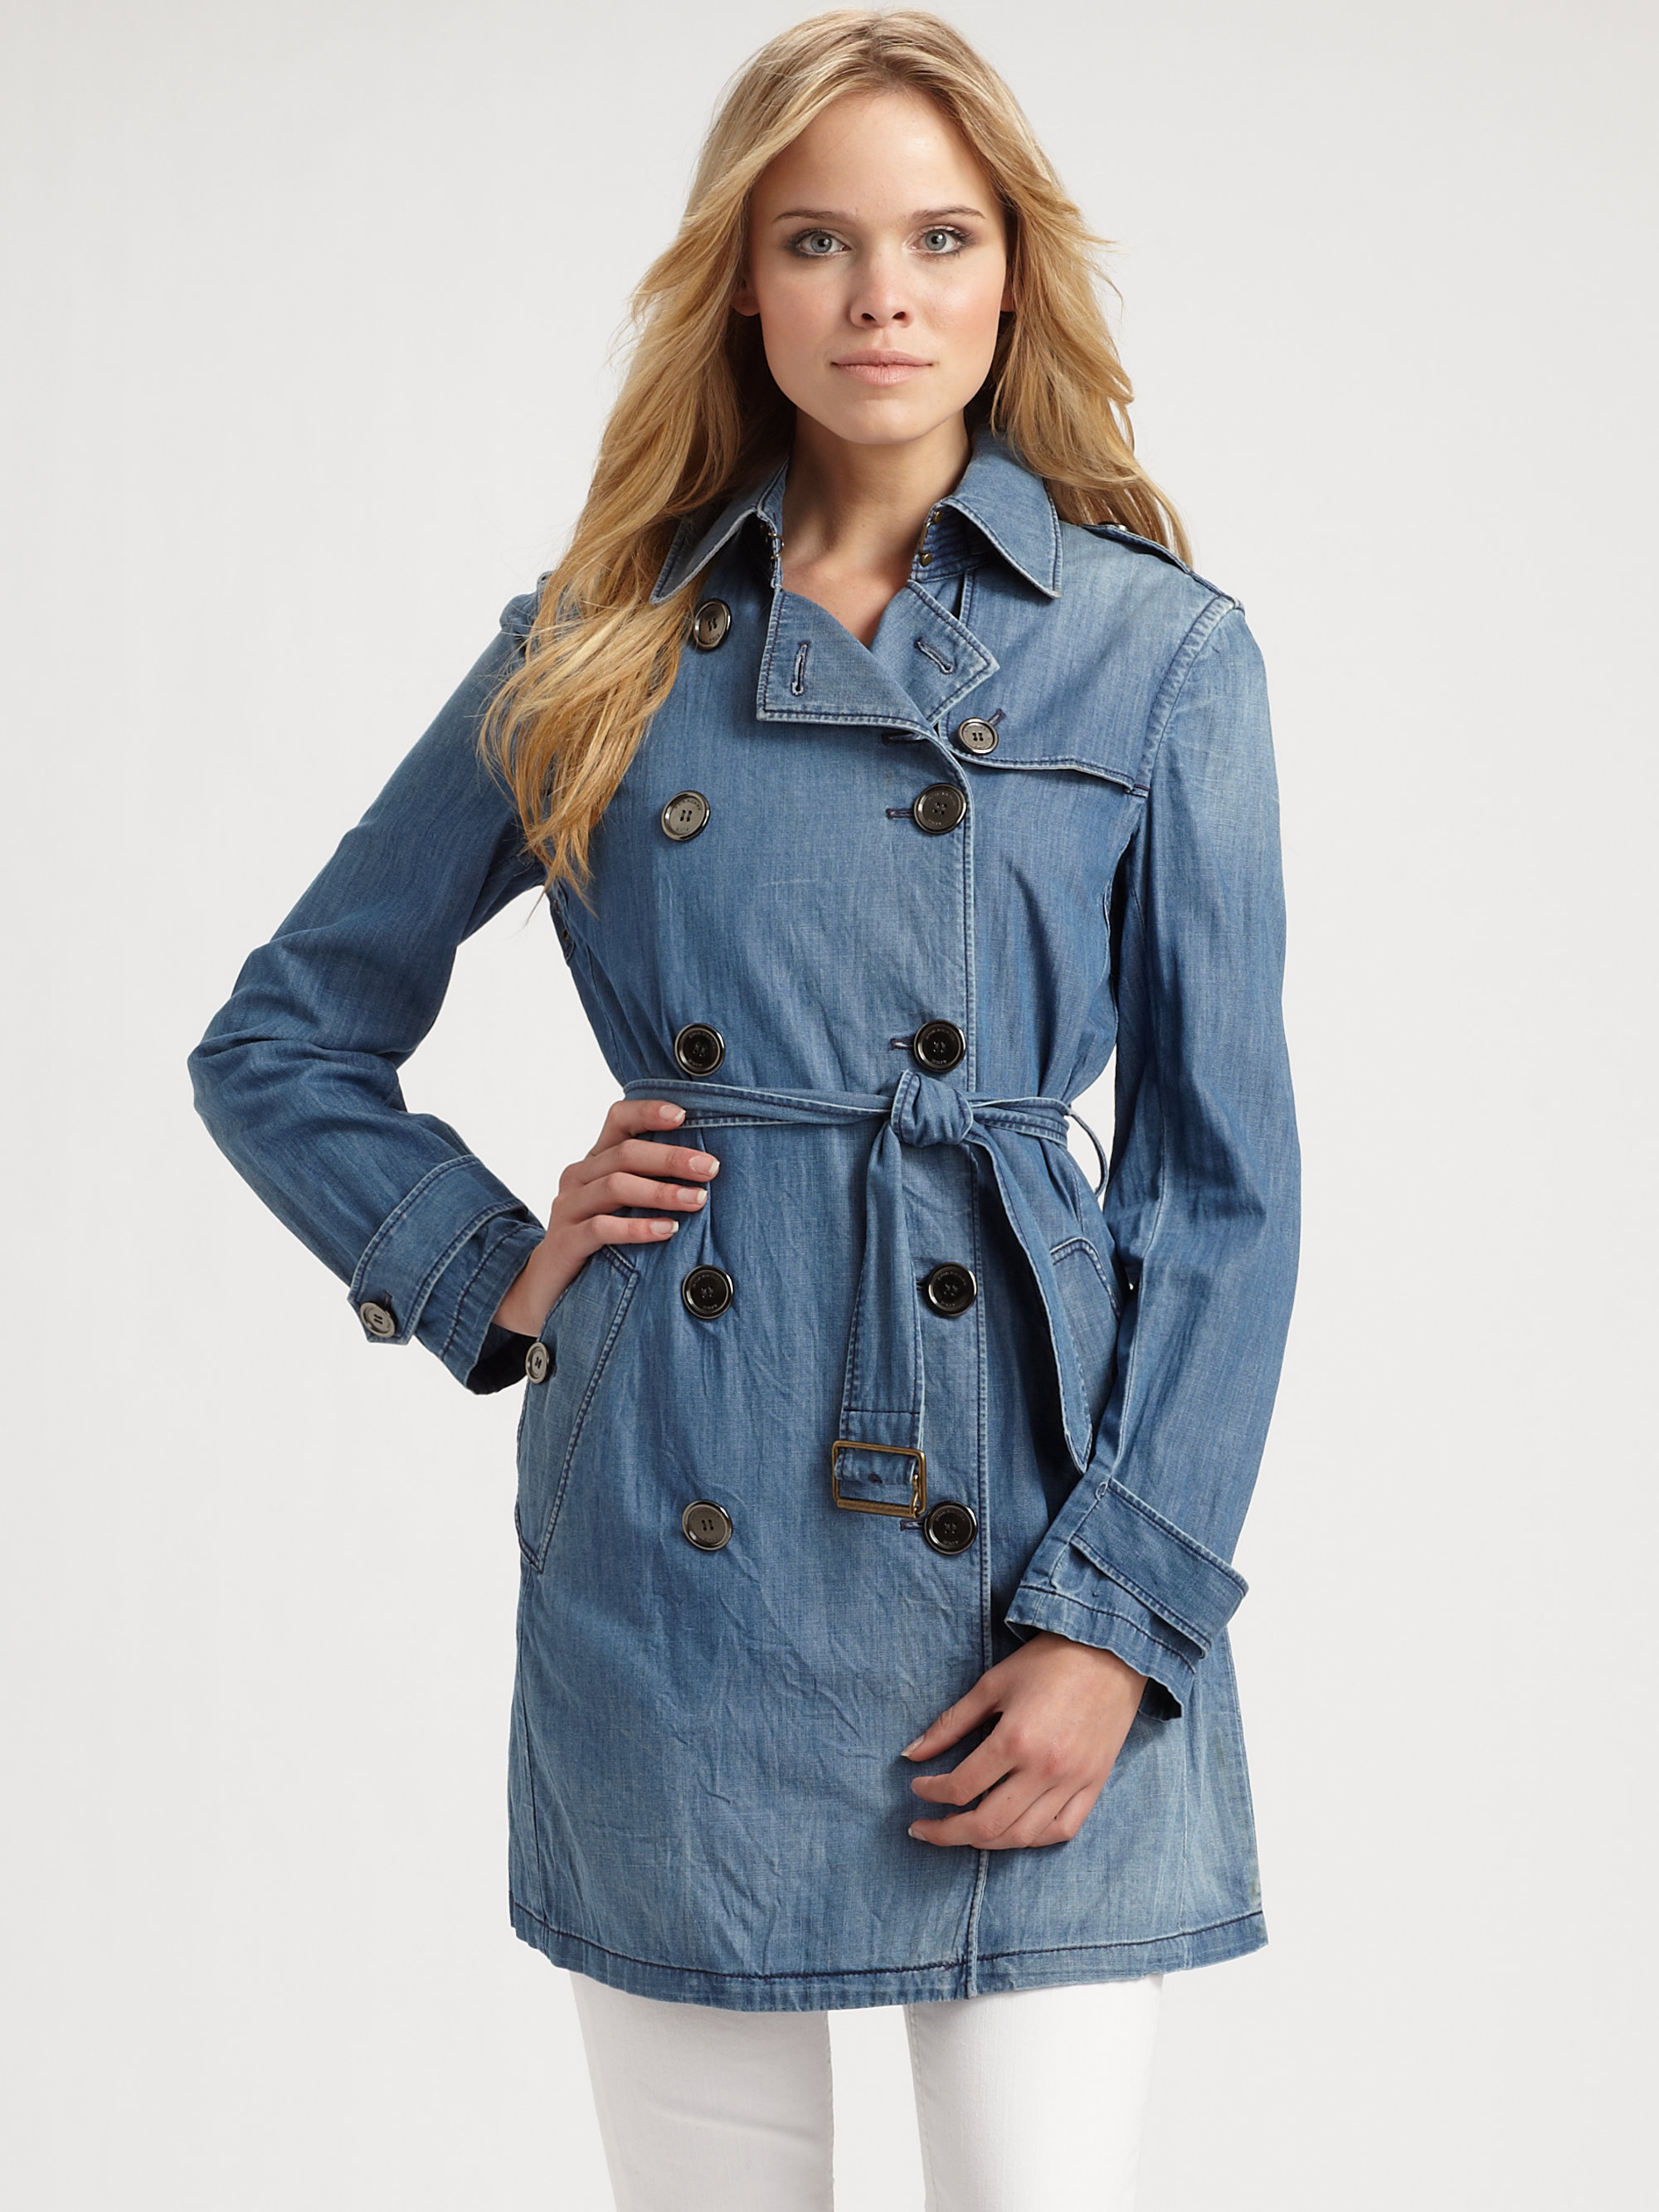 You searched for: denim trench coat! Etsy is the home to thousands of handmade, vintage, and one-of-a-kind products and gifts related to your search. No matter what you're looking for or where you are in the world, our global marketplace of sellers can help you find unique and affordable options. Let's get started!